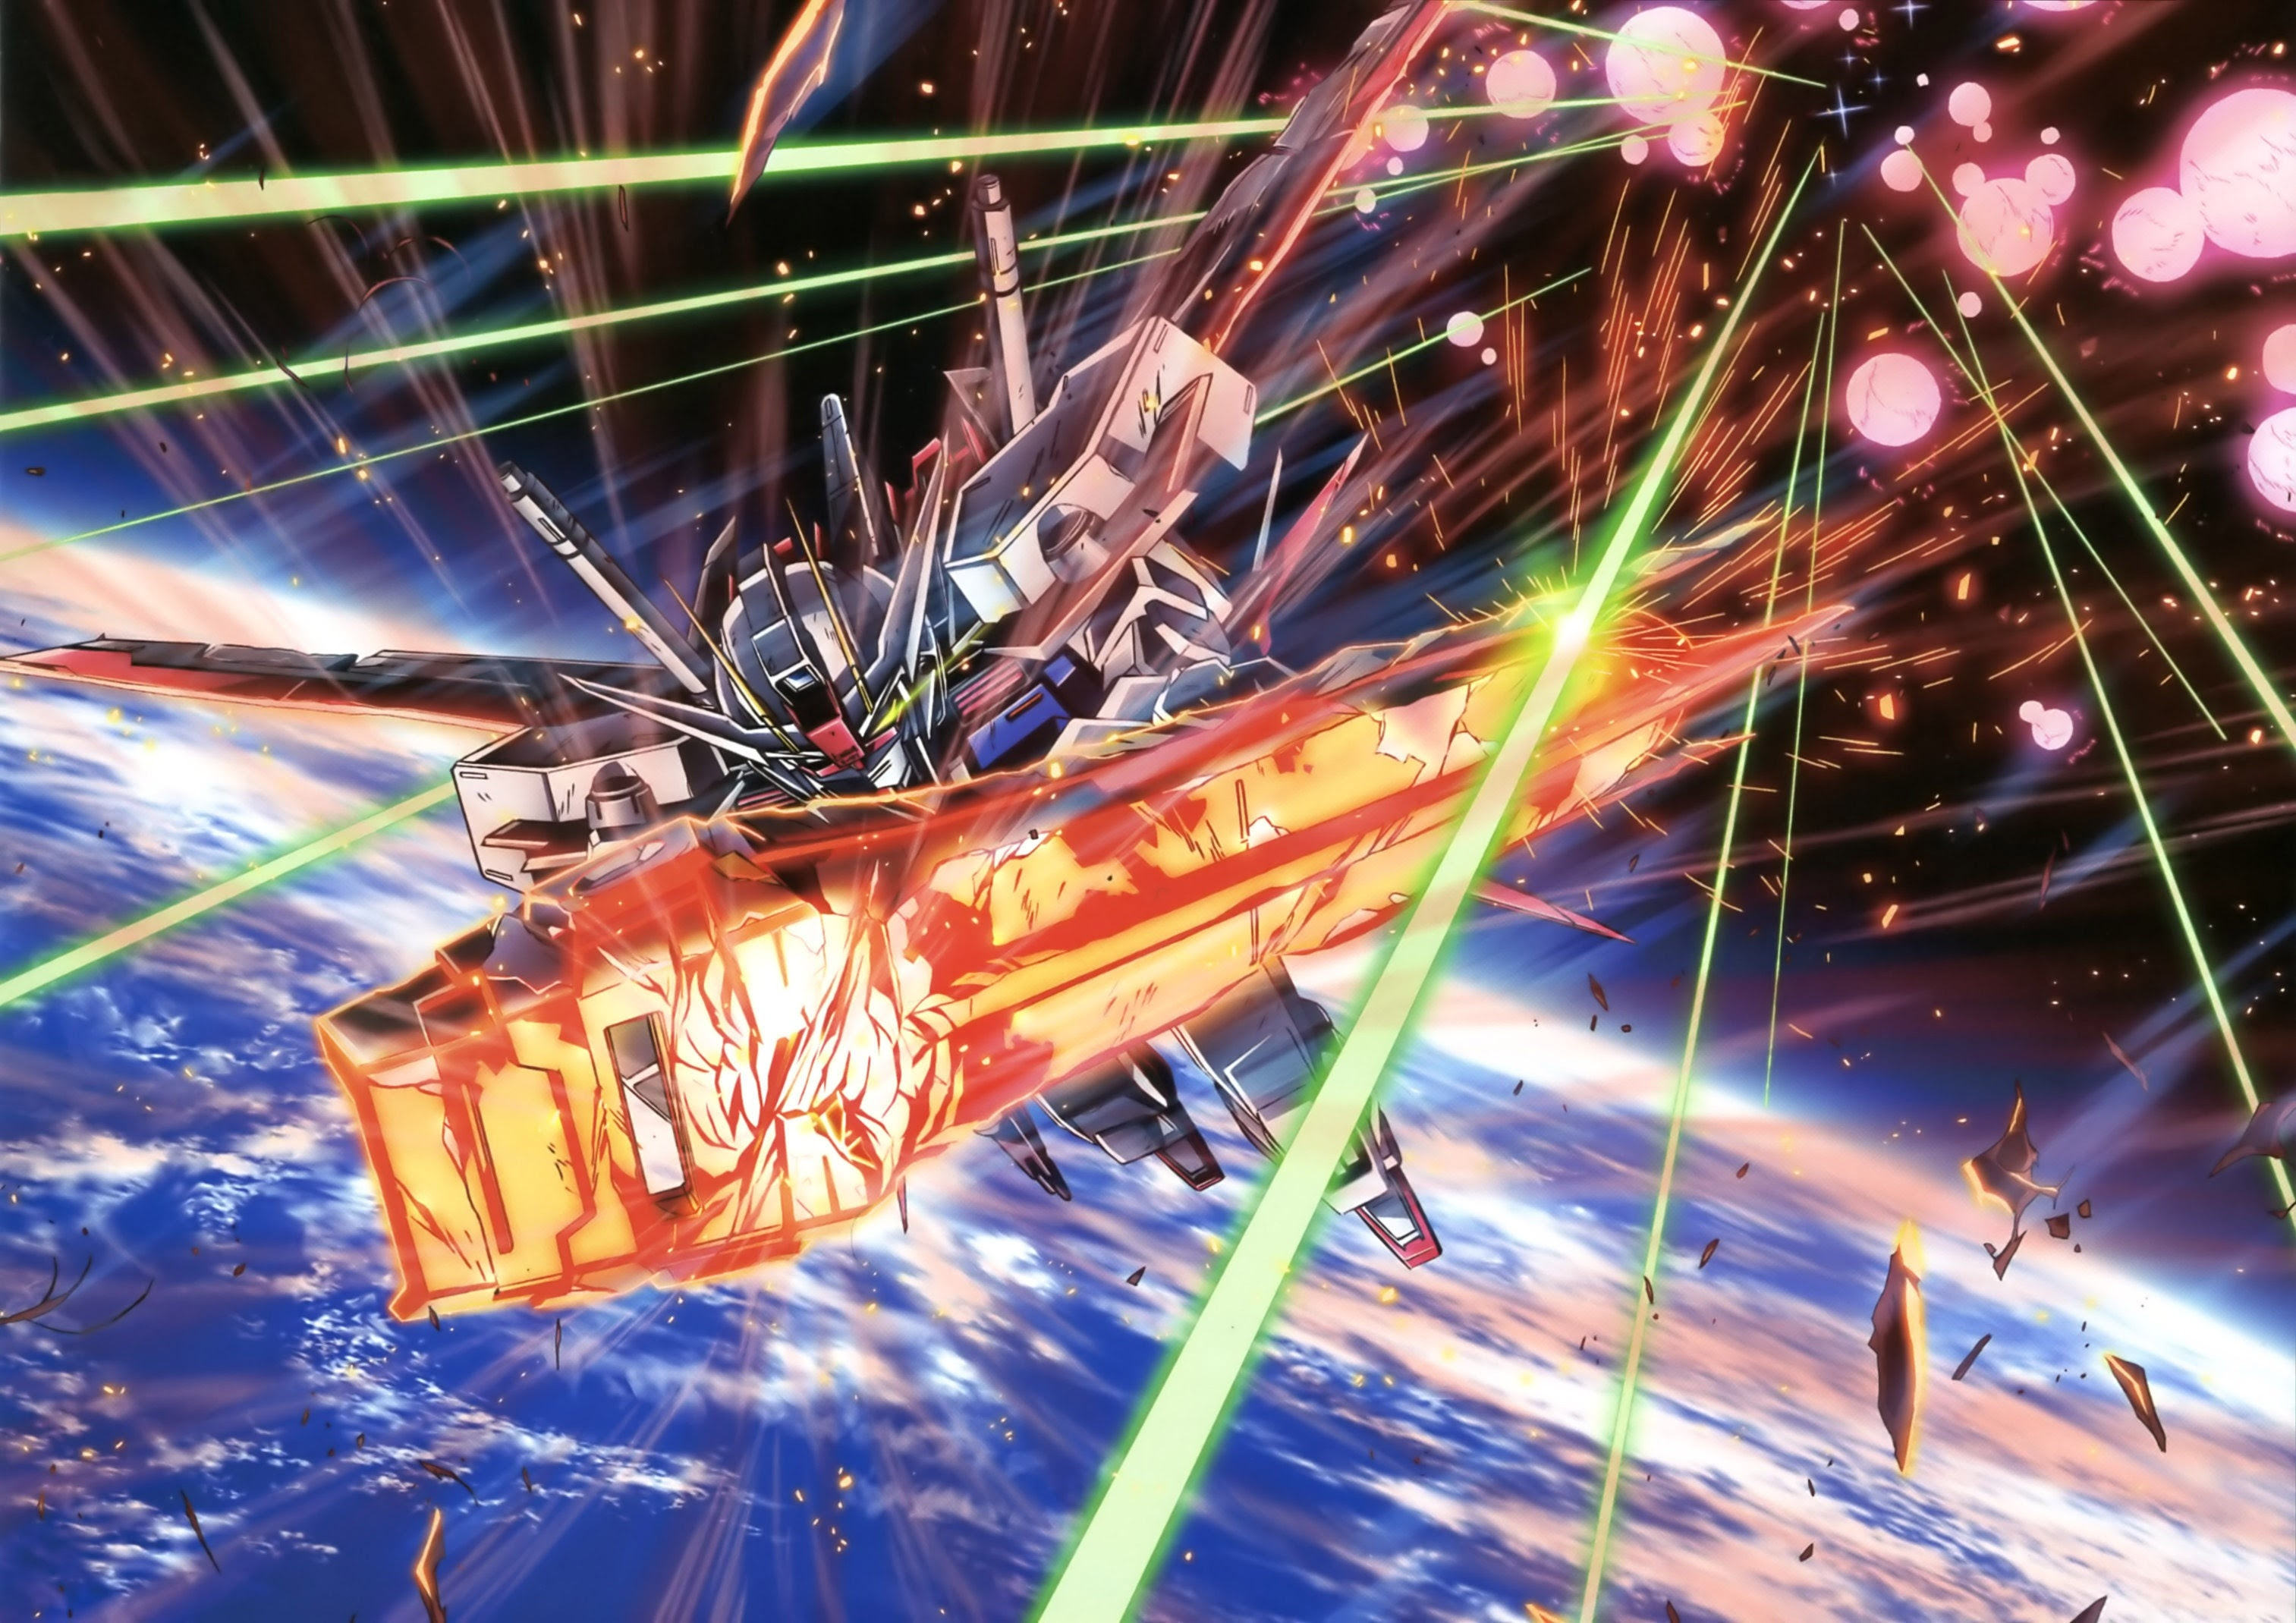 Gundam Seed Destiny 3026x2139 Wallpaper Anime Gundam Seed Hd